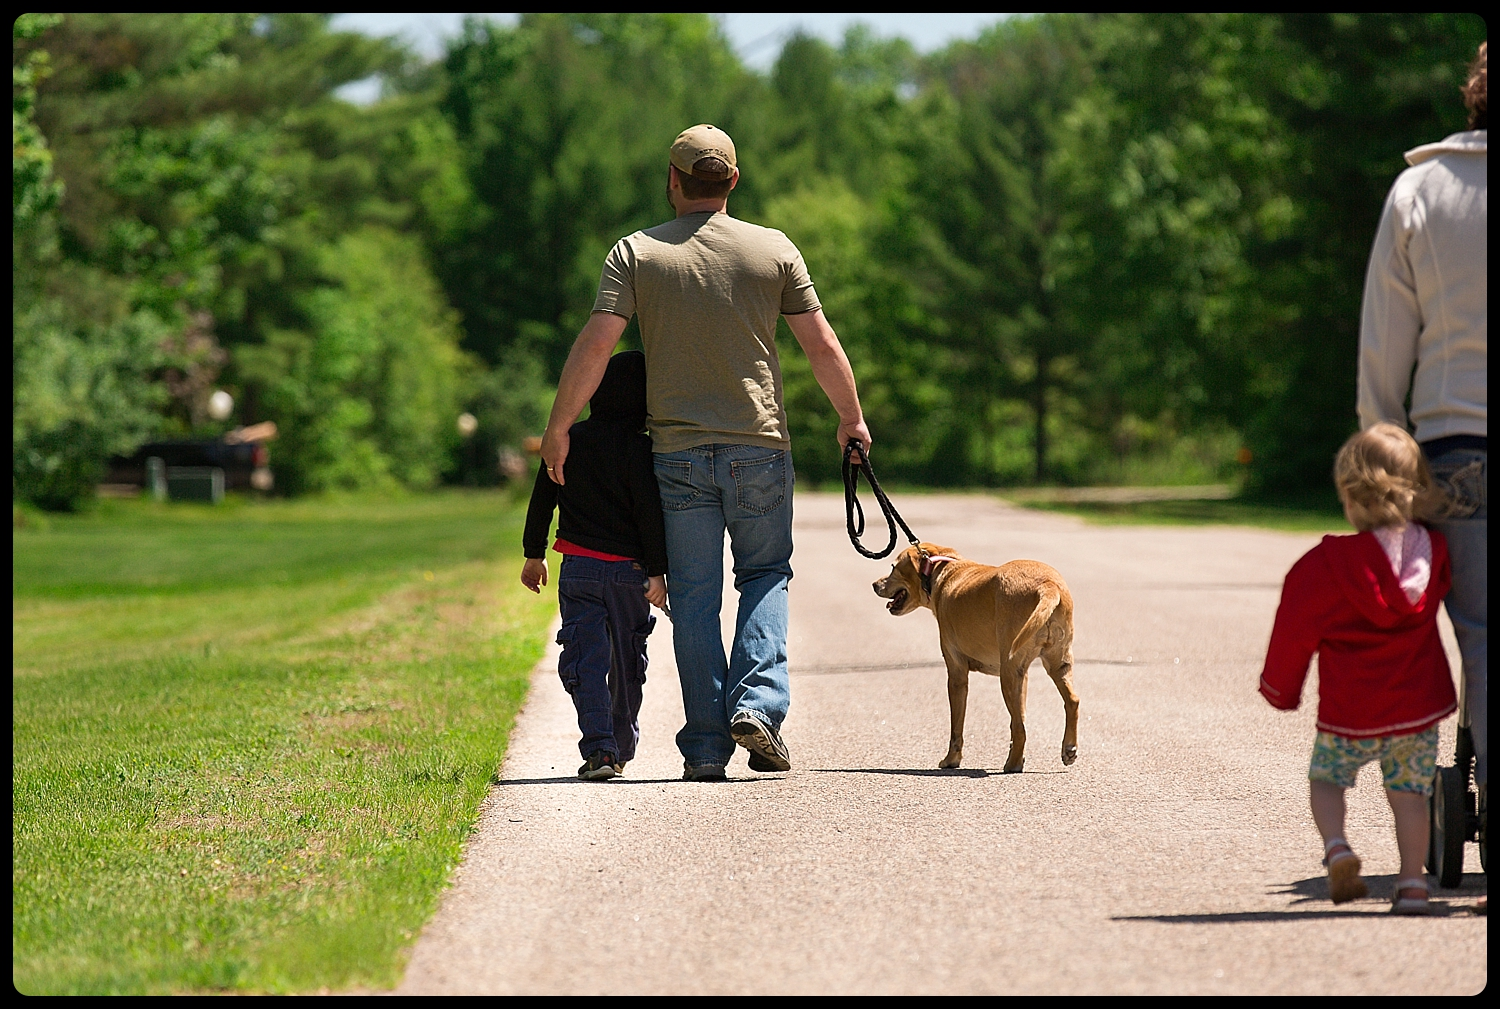 Family goes for a walk while dad snuggles son and walks dog.